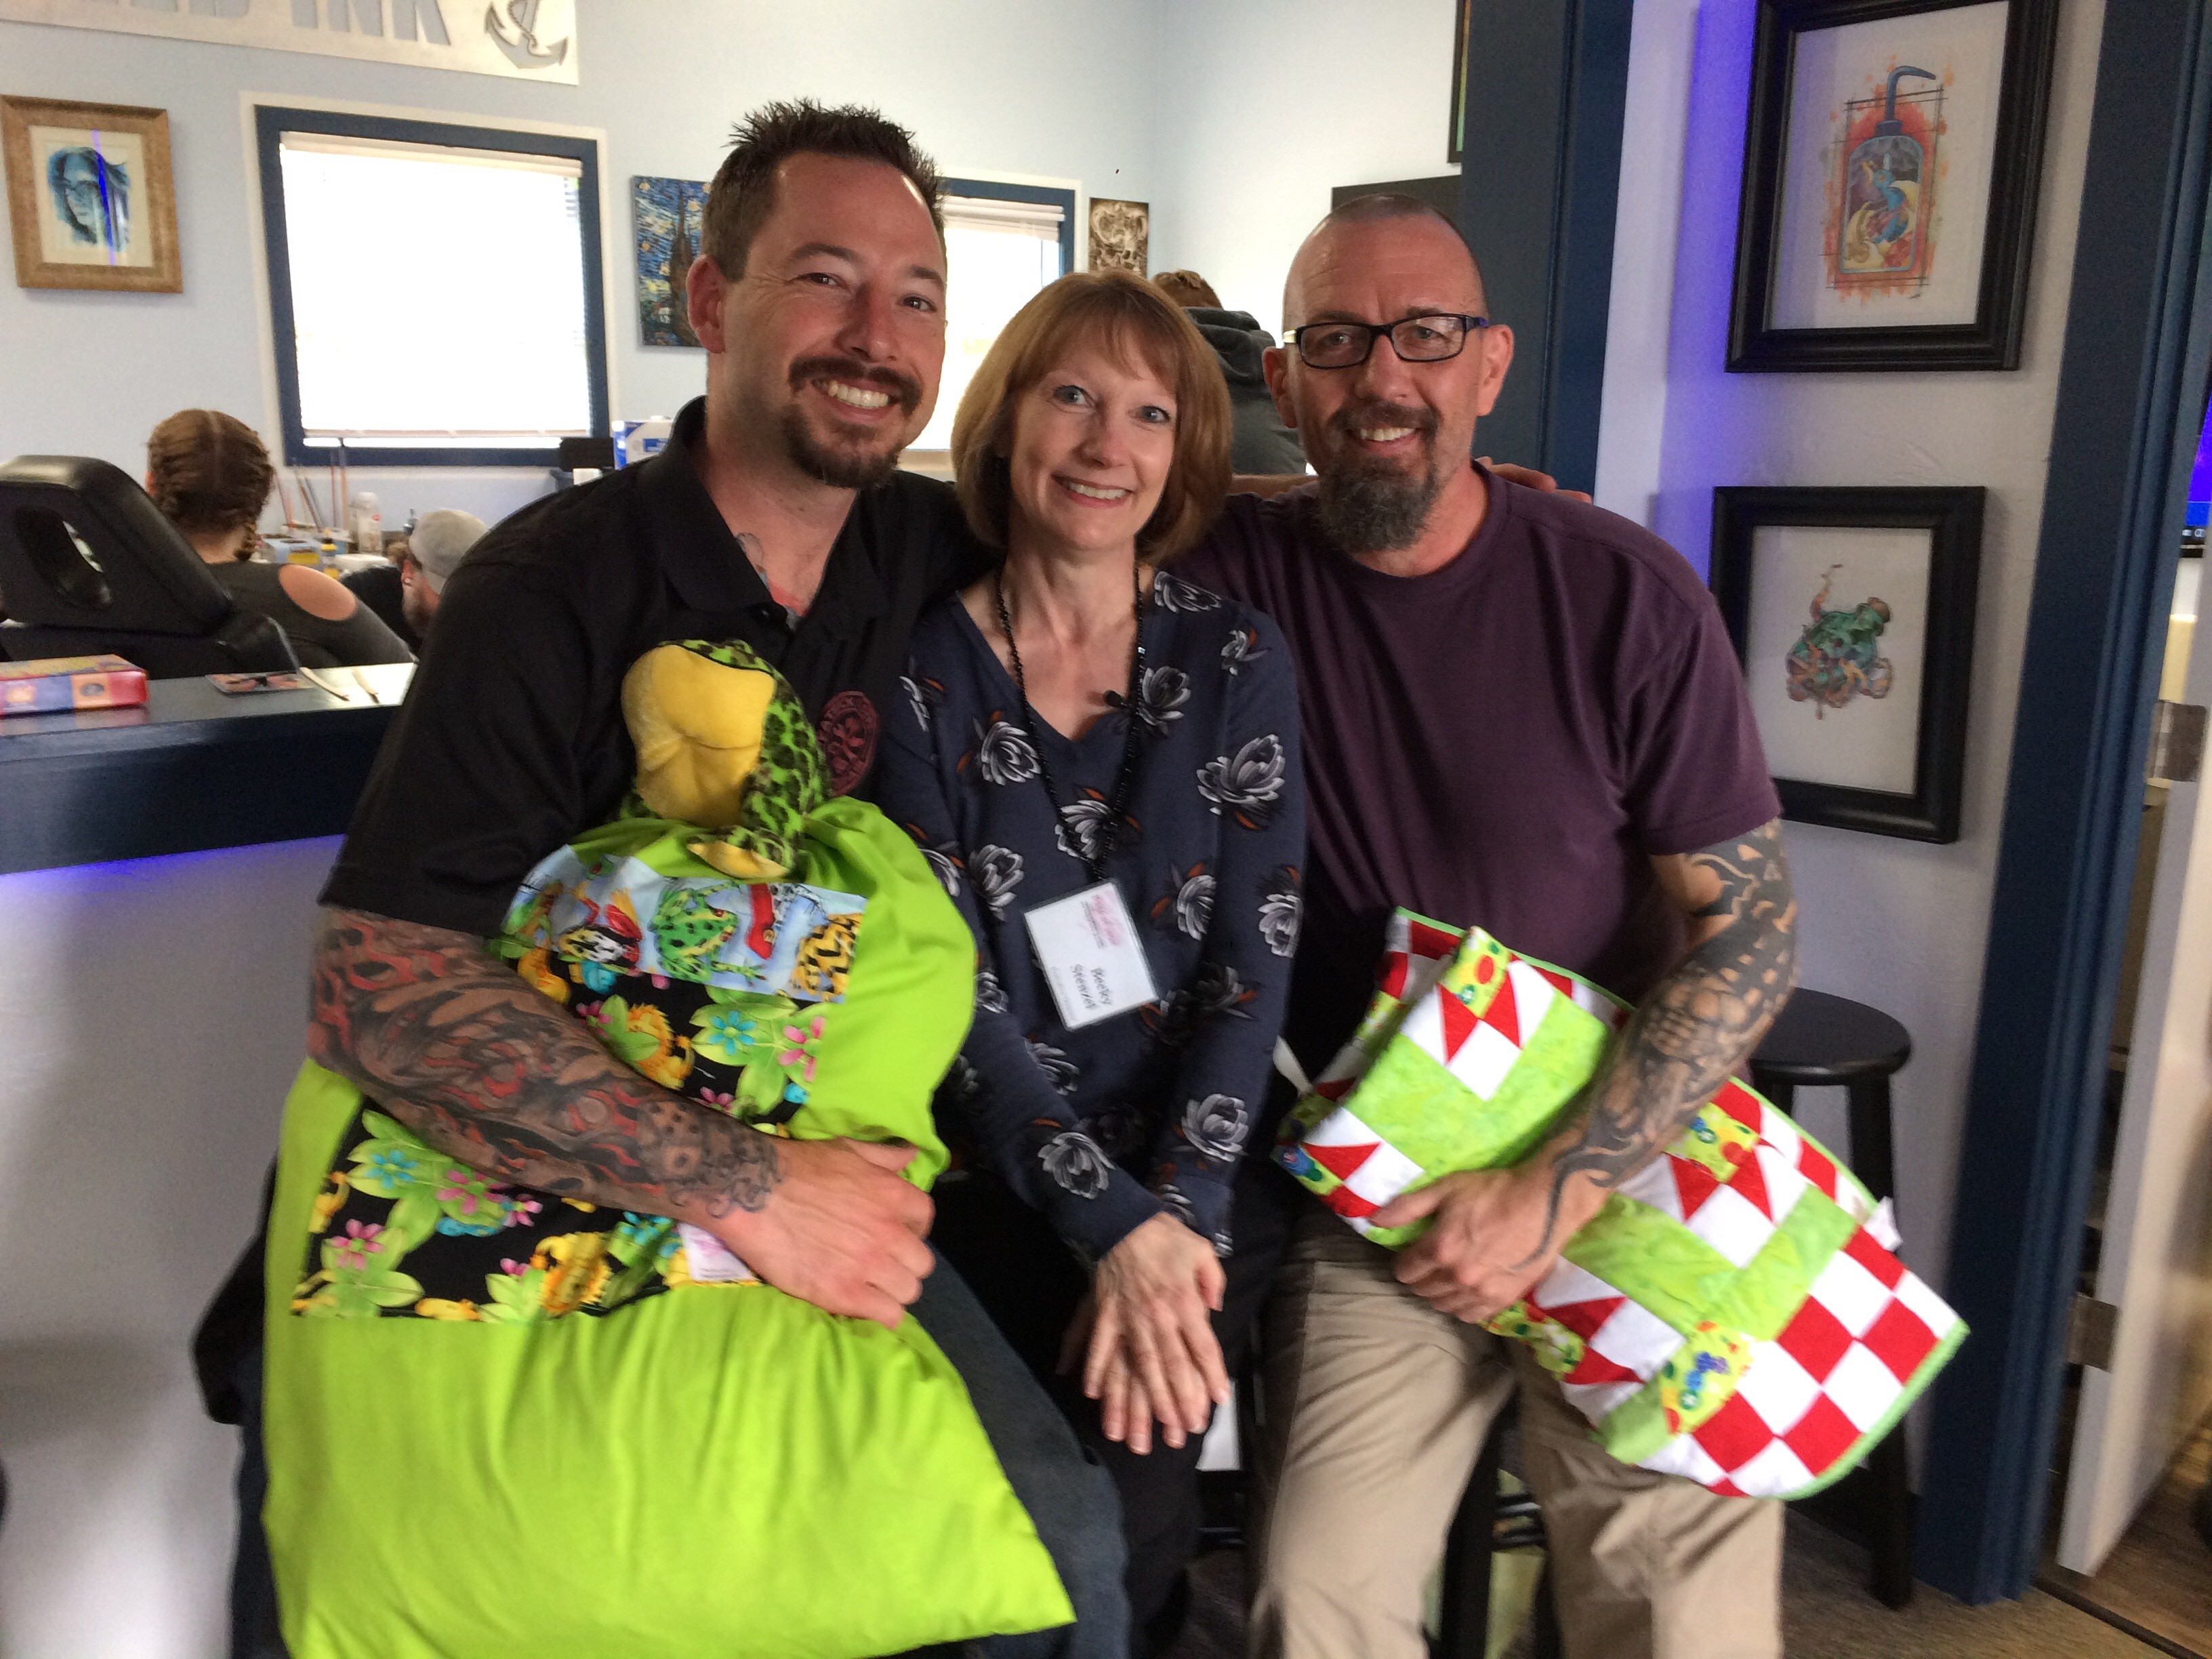 Event organizer Patrick Olsen (Left), Bags of Love Executive Director Becky Stenzel (Center), Anchored Ink Tattoos Co-owner, Joshua South (Right). (SBG Photo)